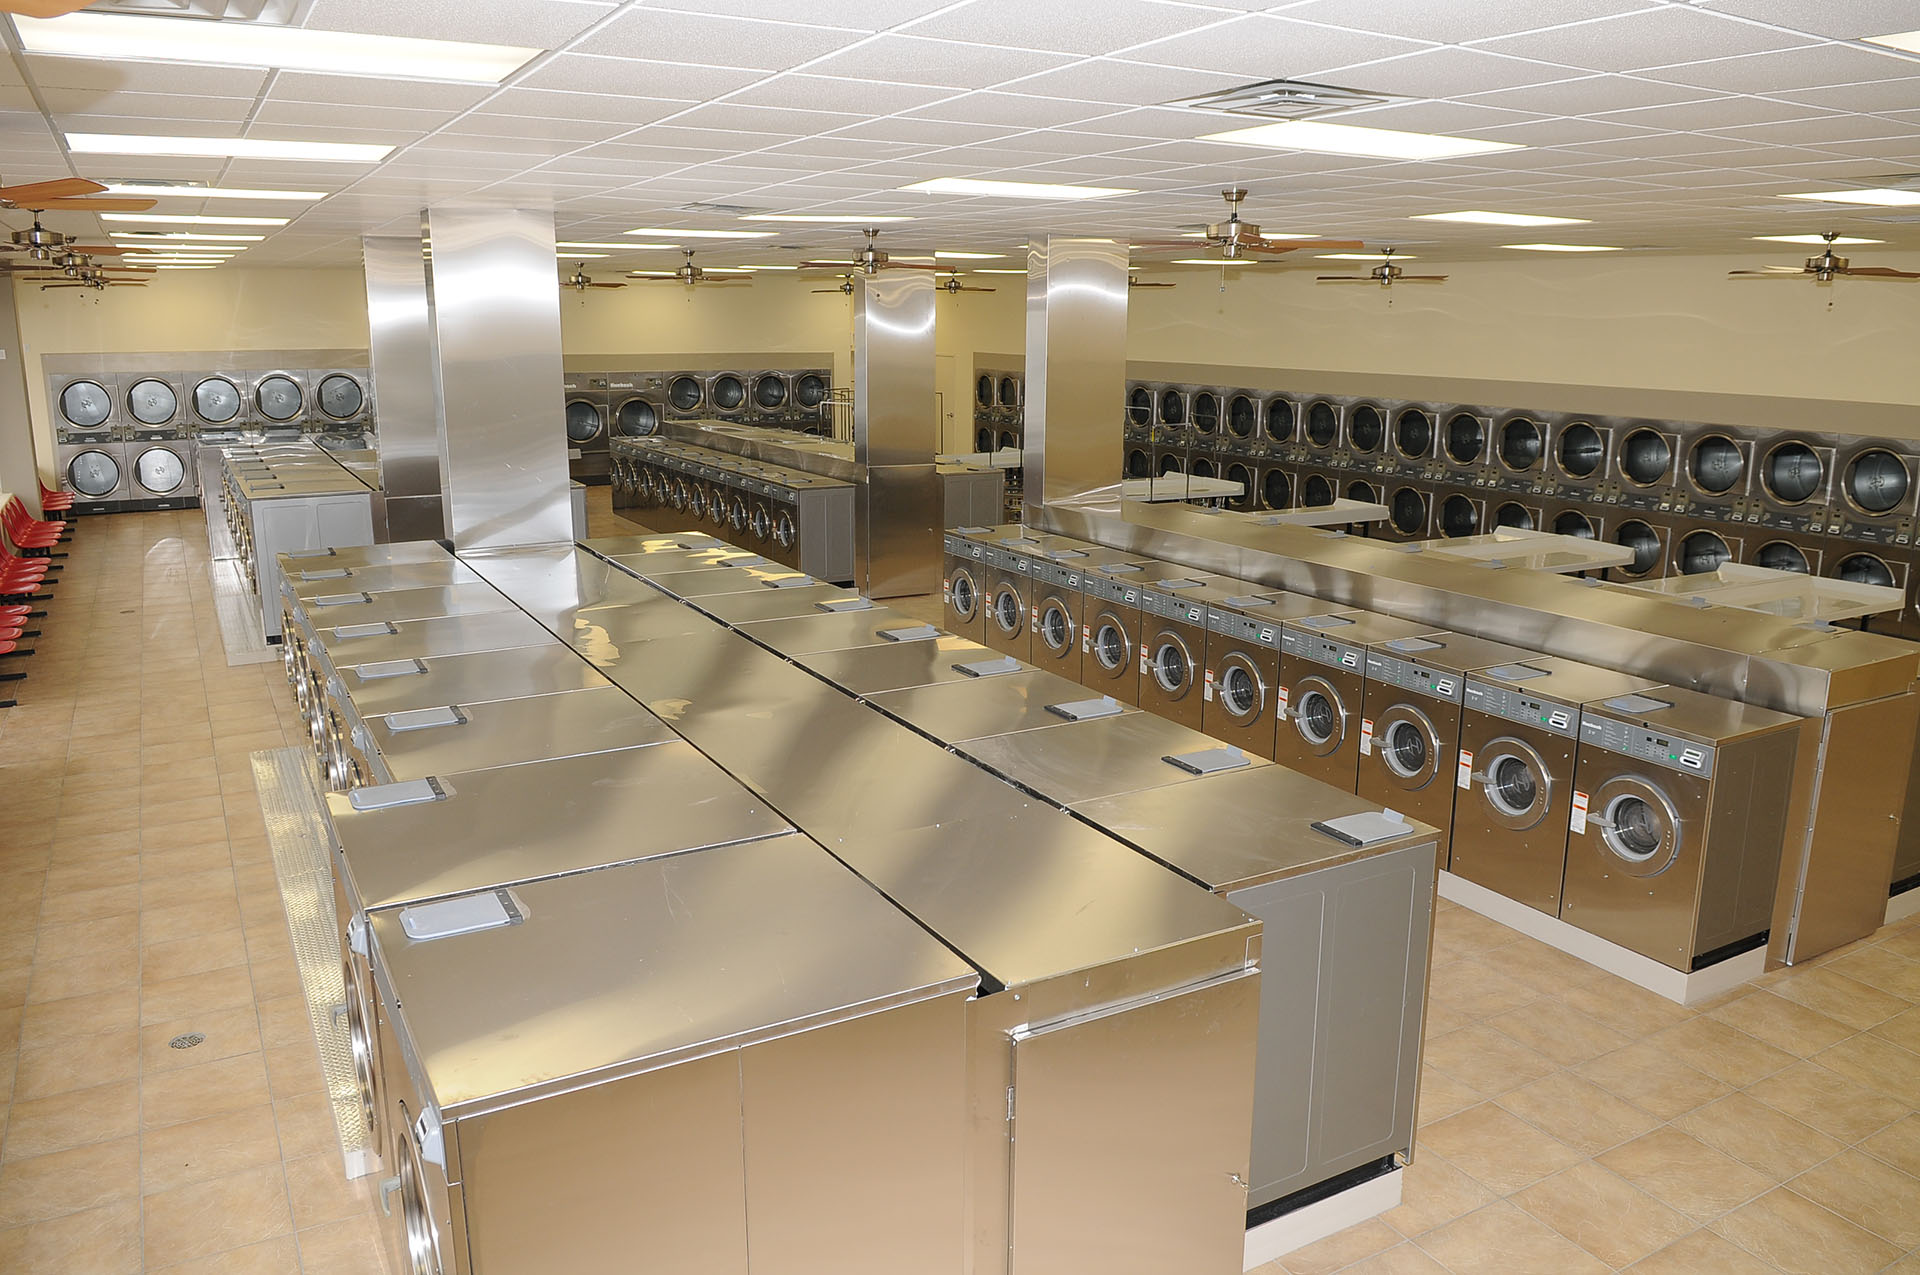 The inside of a laundromat with stainless steel washing machines and dryers